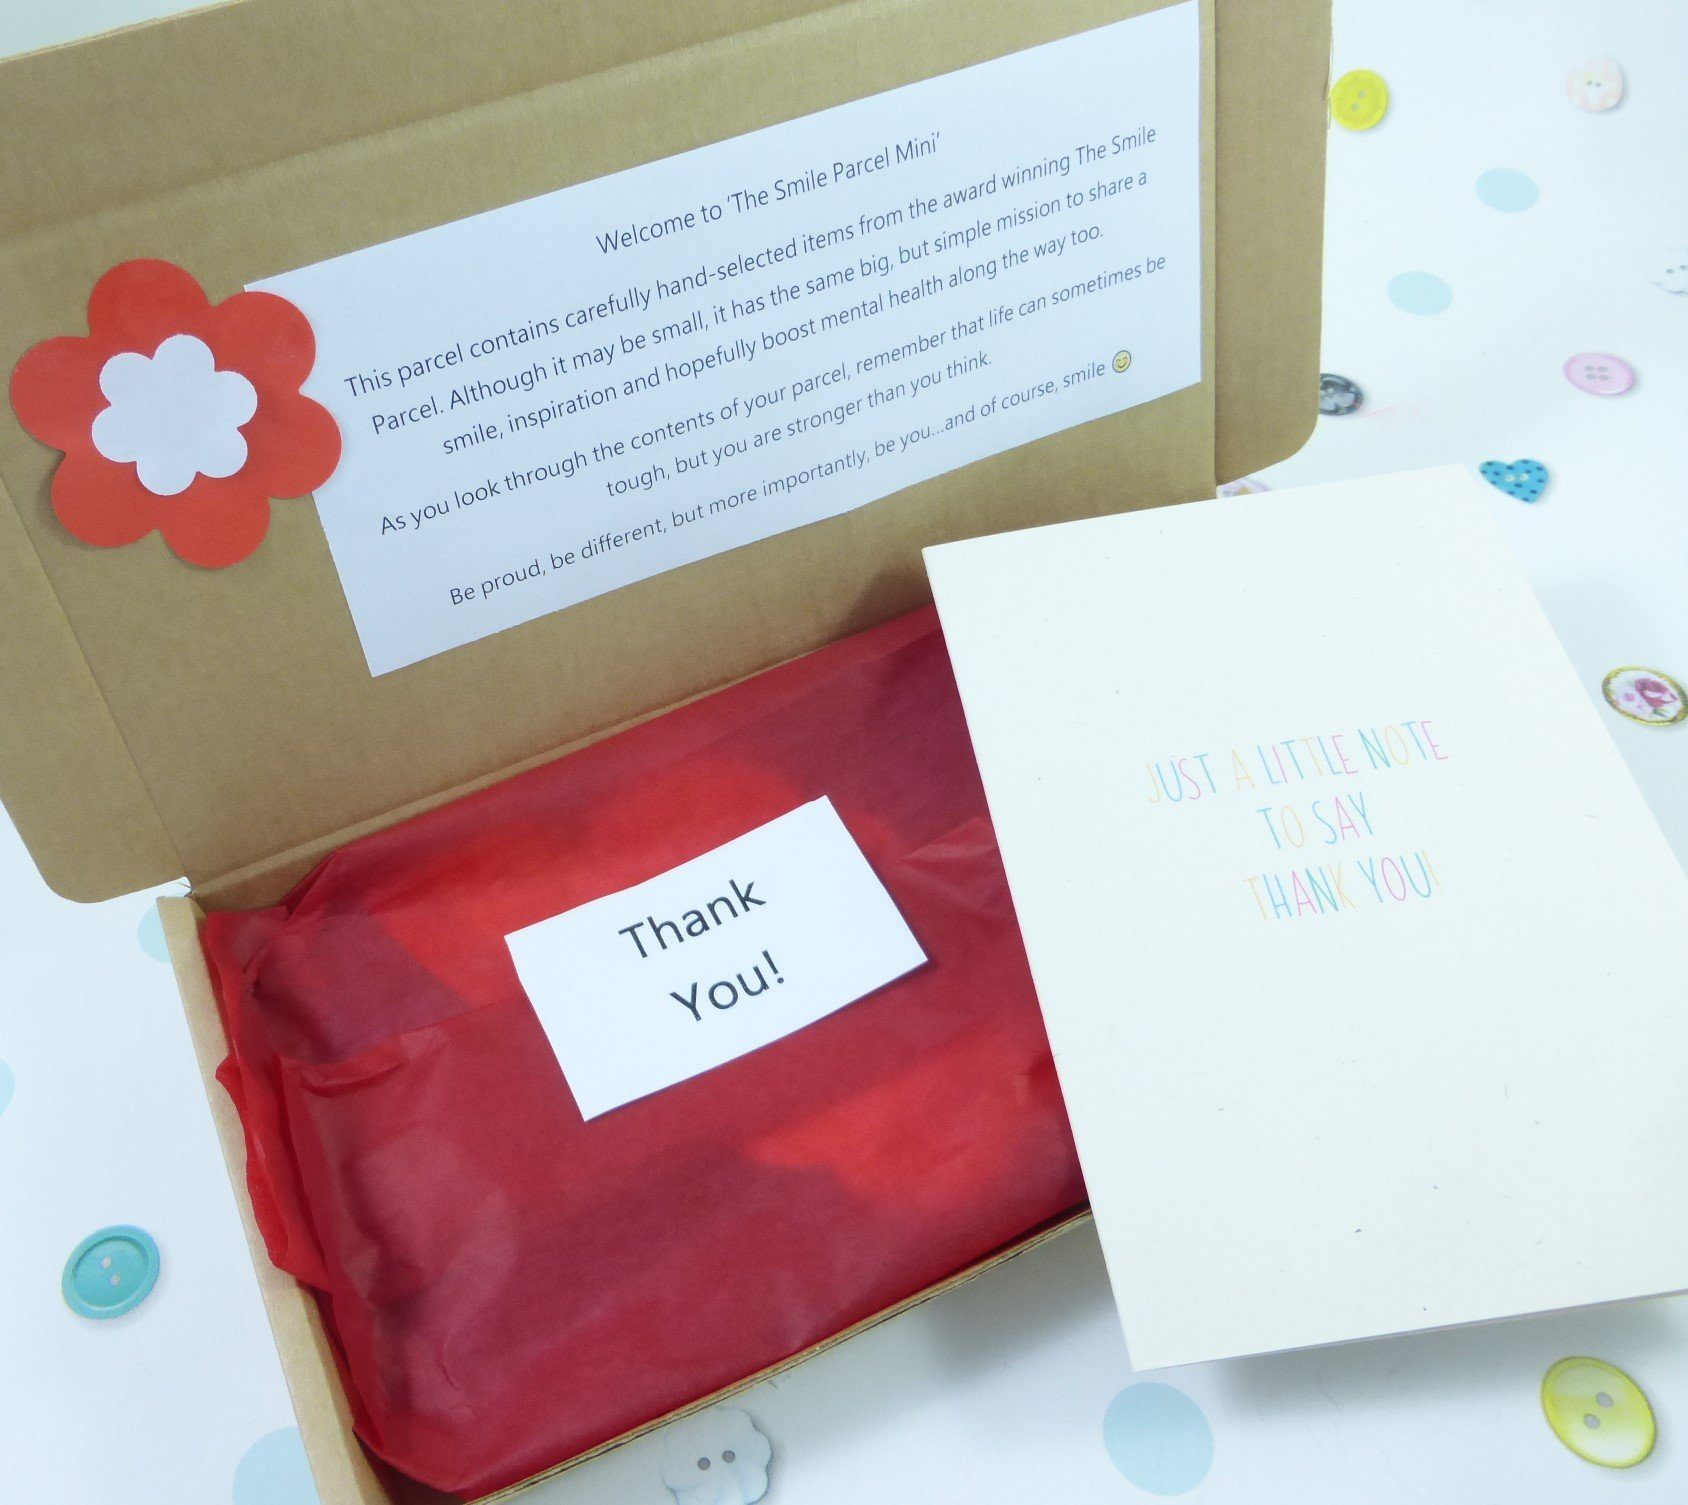 Thank You Gift, Letterbox Friendly, Pick Me Up Gift, The Smile Parcel Mini, Self Care Box, Mental Health Gift Kind Shop